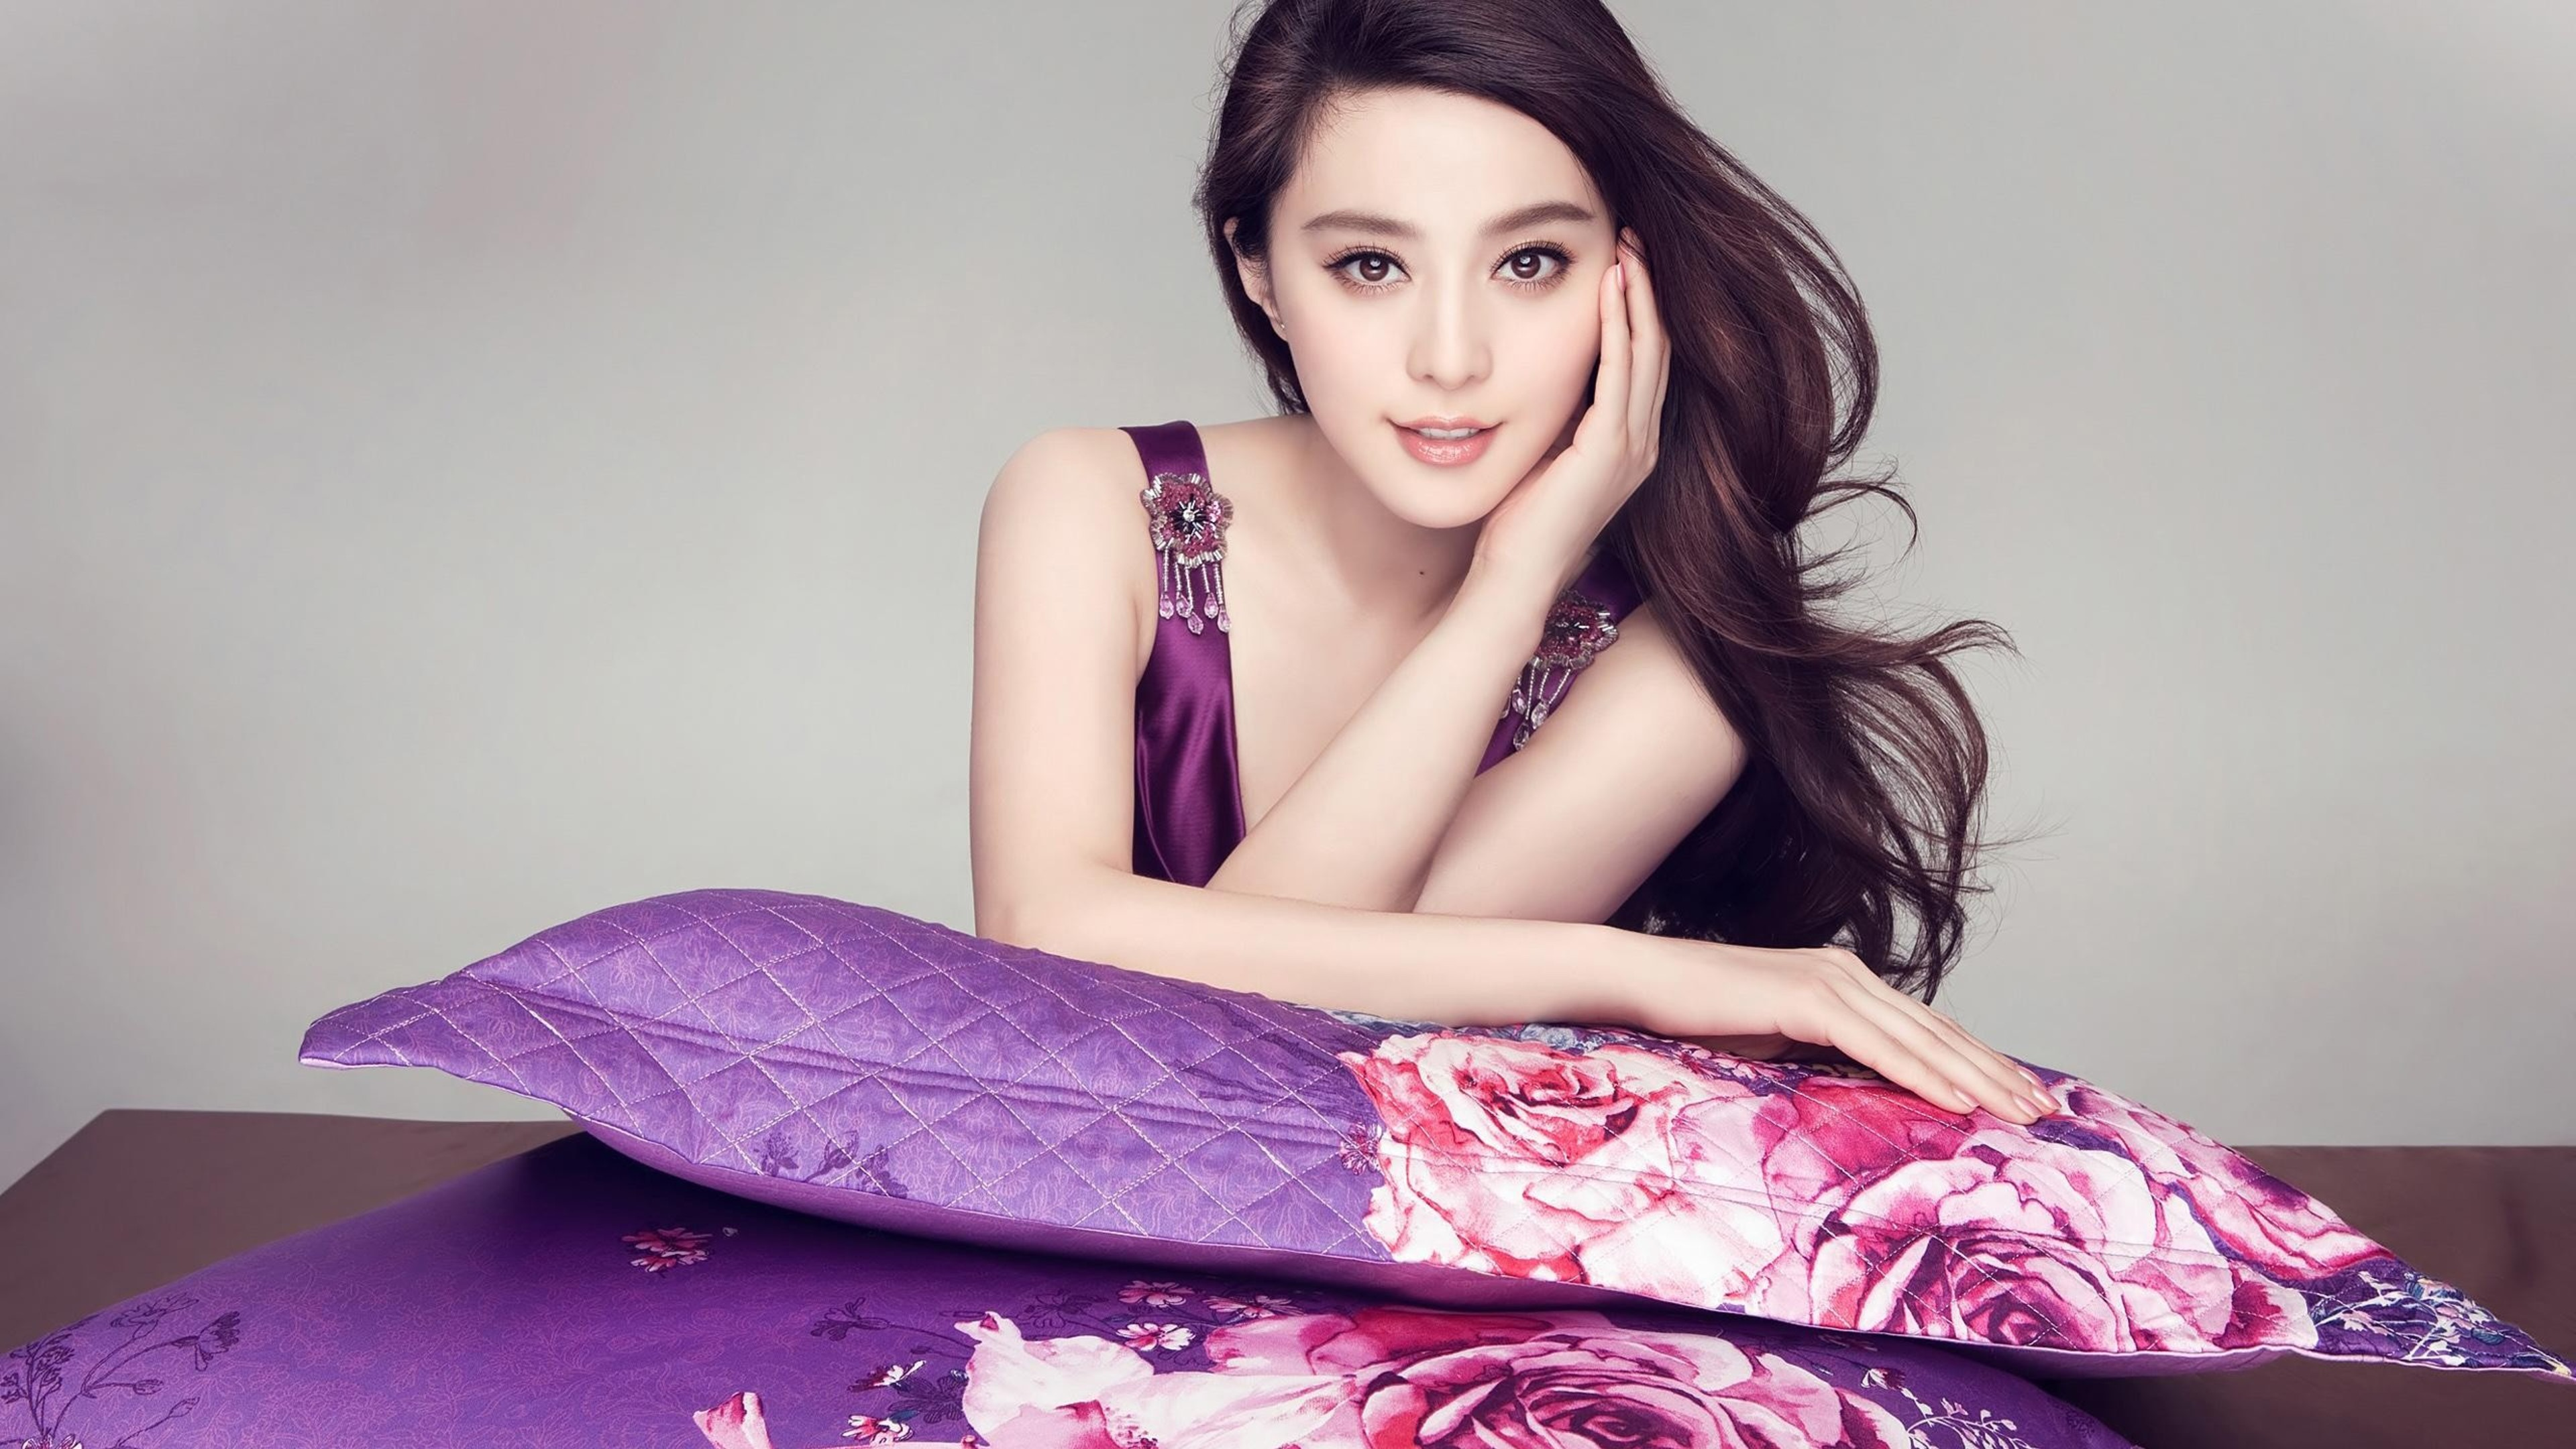 2016 fan bingbing 1536855763 - 2016 Fan Bingbing - girls wallpapers, fan bingbing wallpapers, celebrities wallpapers, asian wallpapers